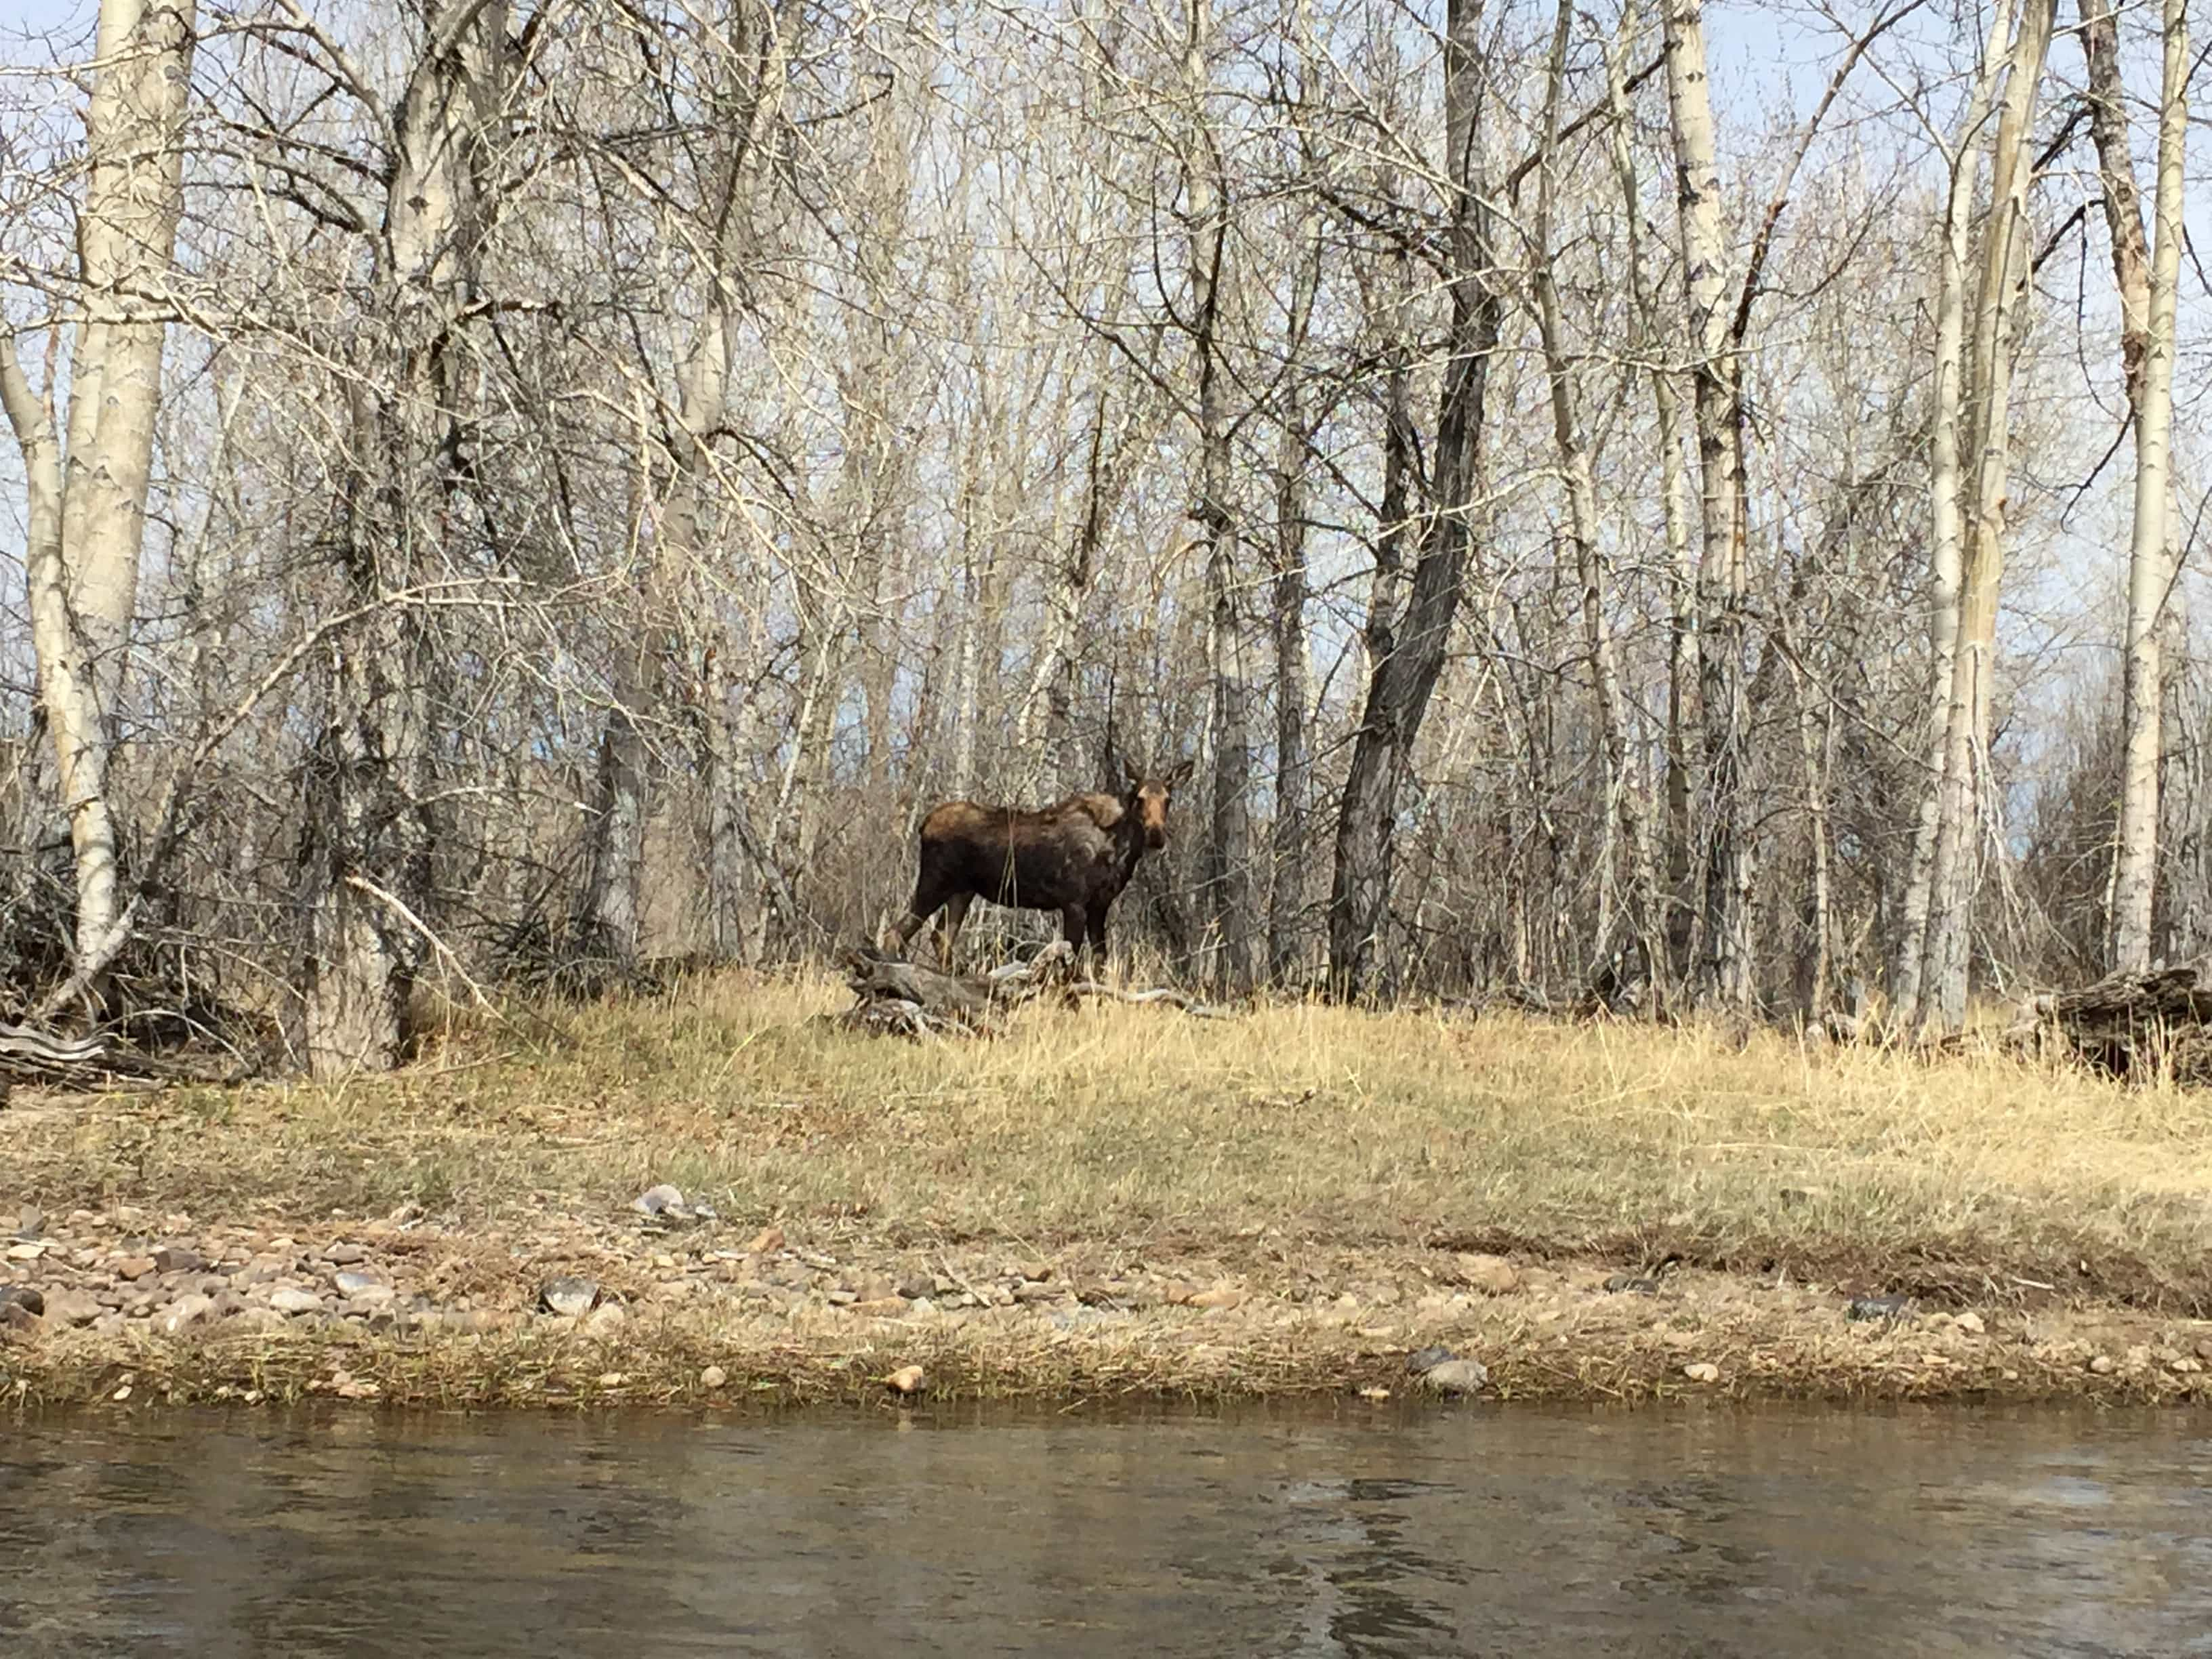 The Moose are out and about enjoying the spring time too!